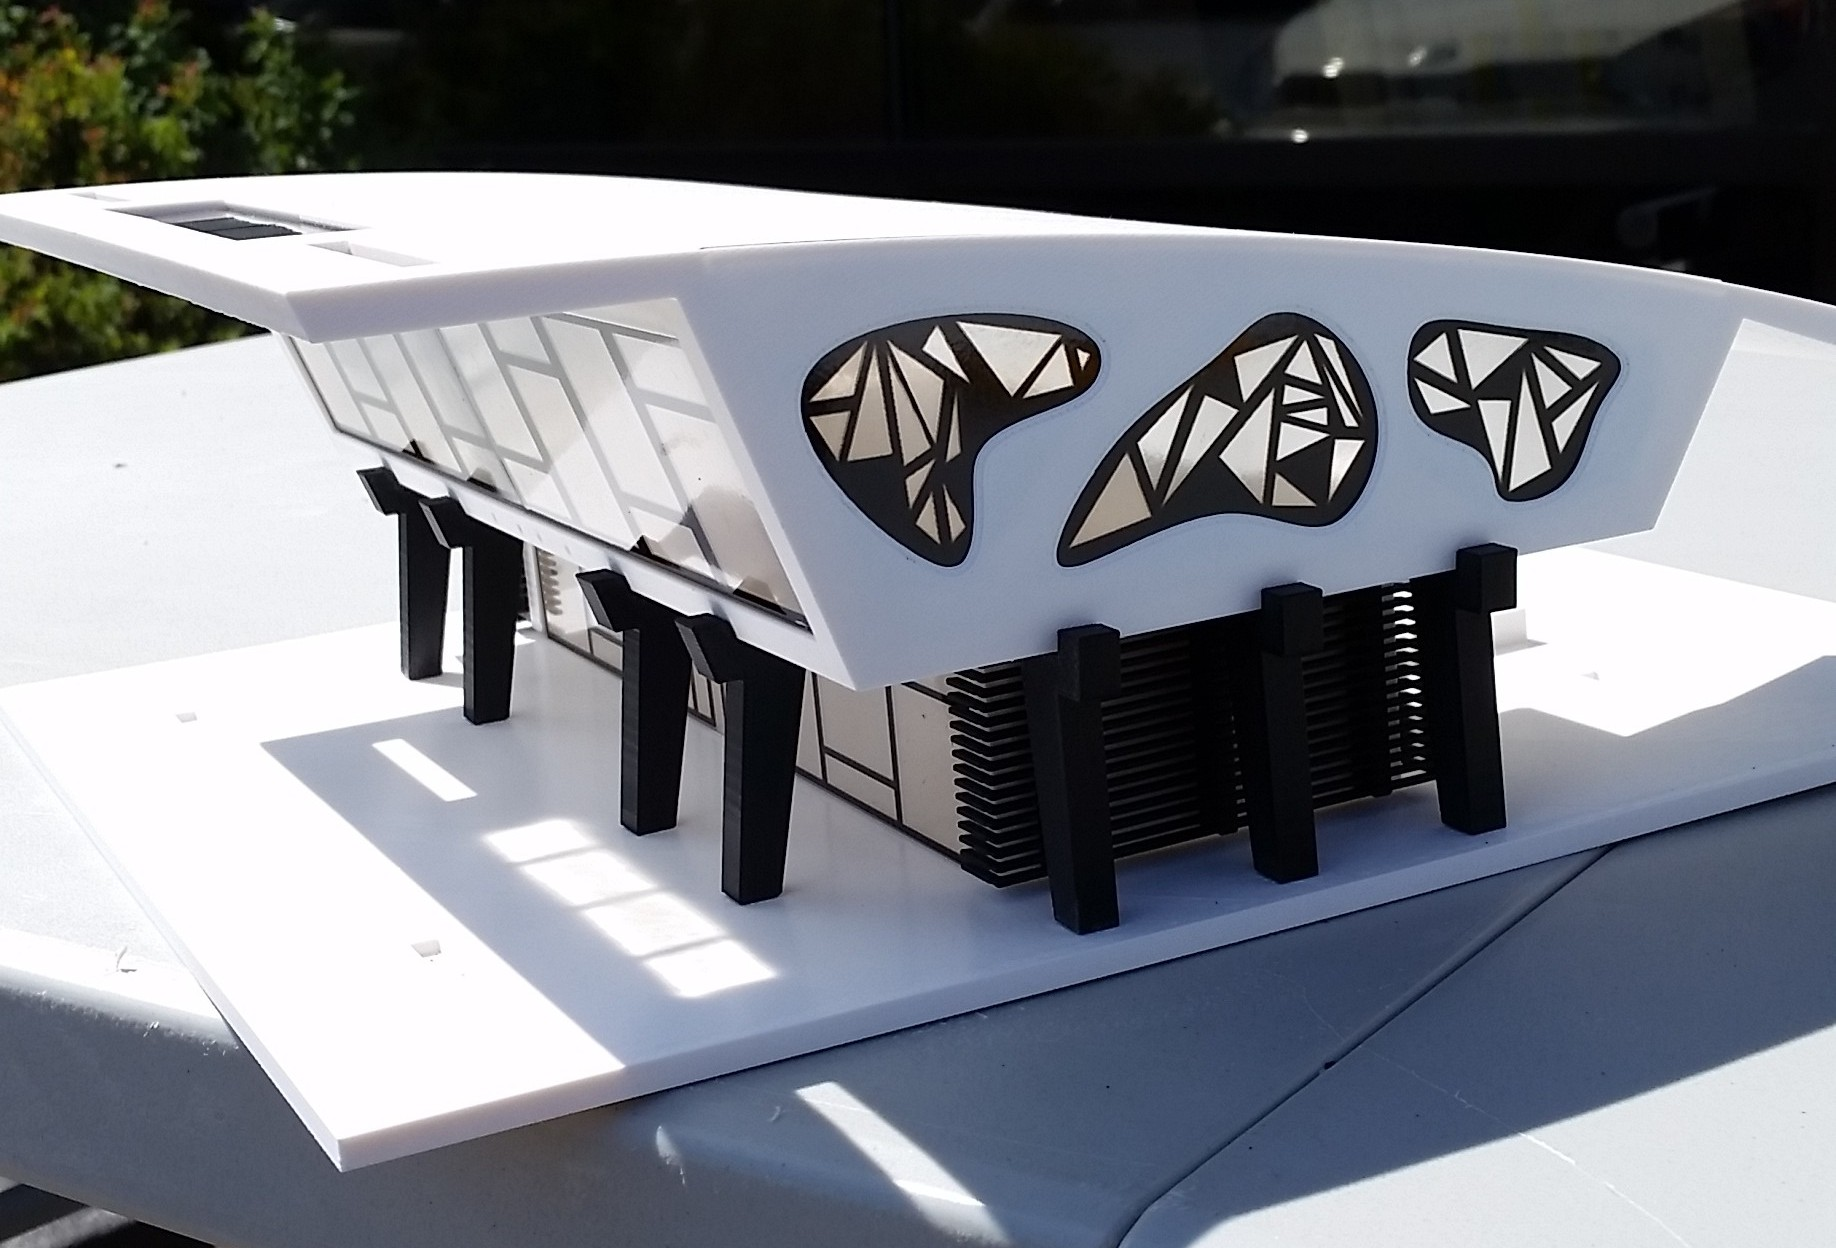 3D Printed model without accessories added